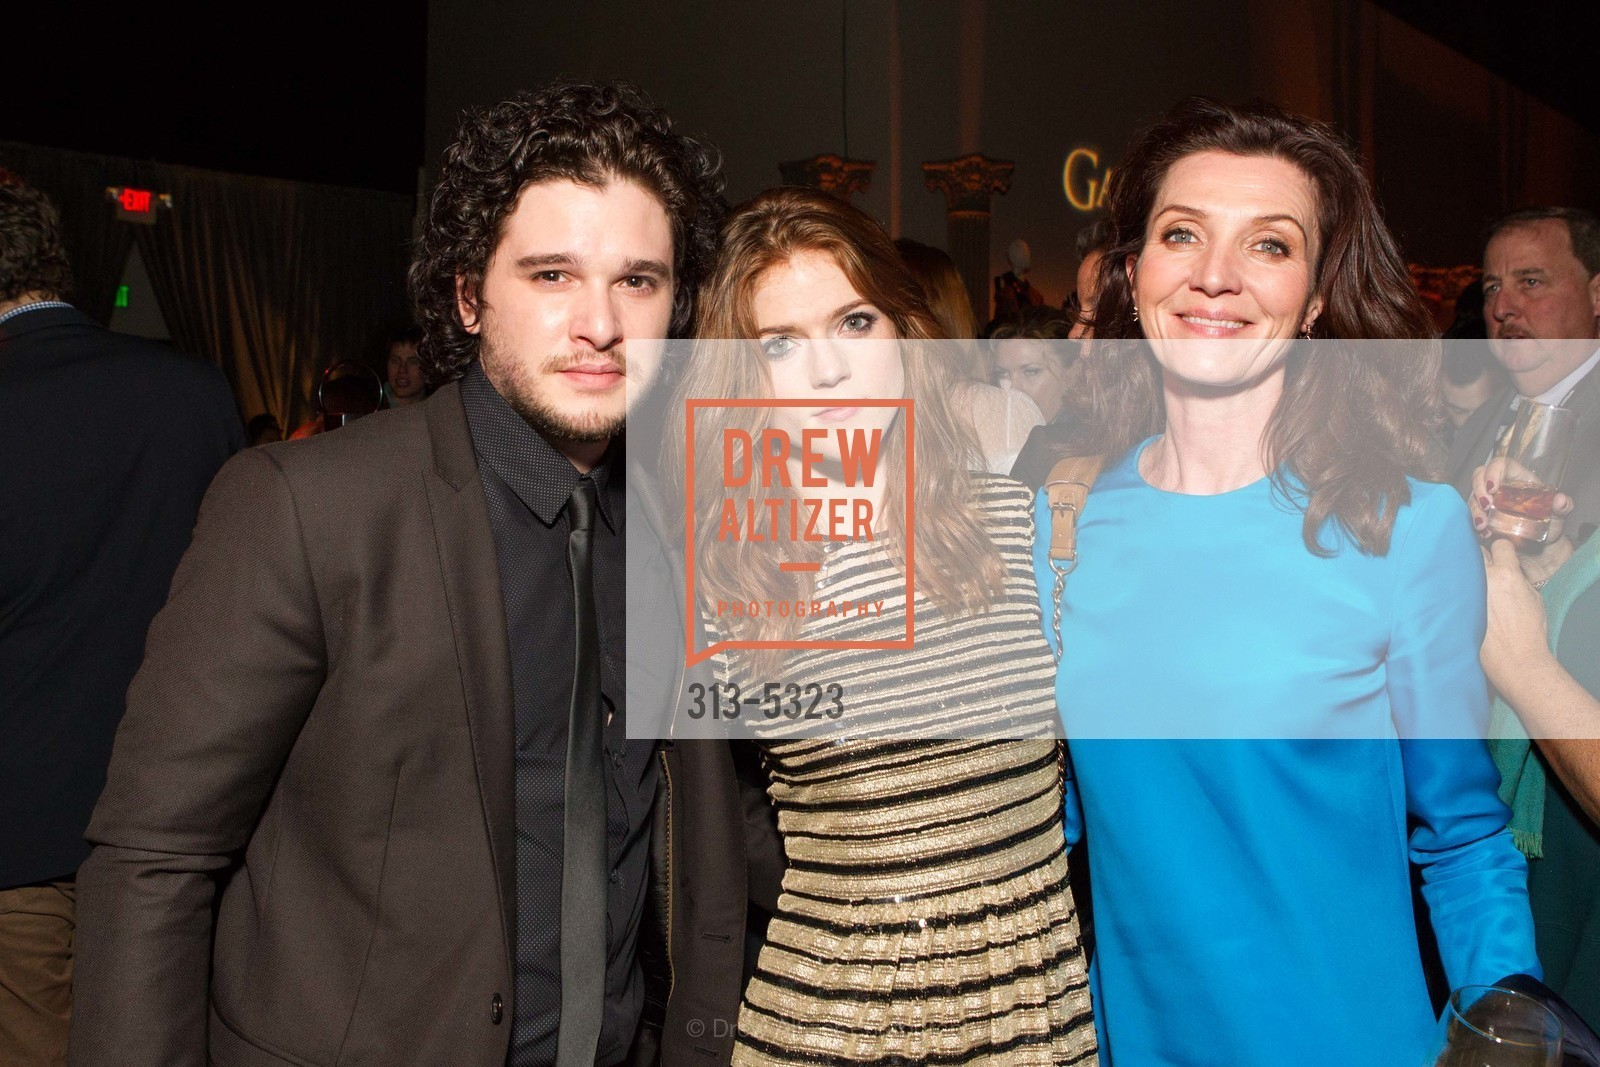 Kit Harington, Rose Leslie, Michelle Fairley, Photo #313-5323